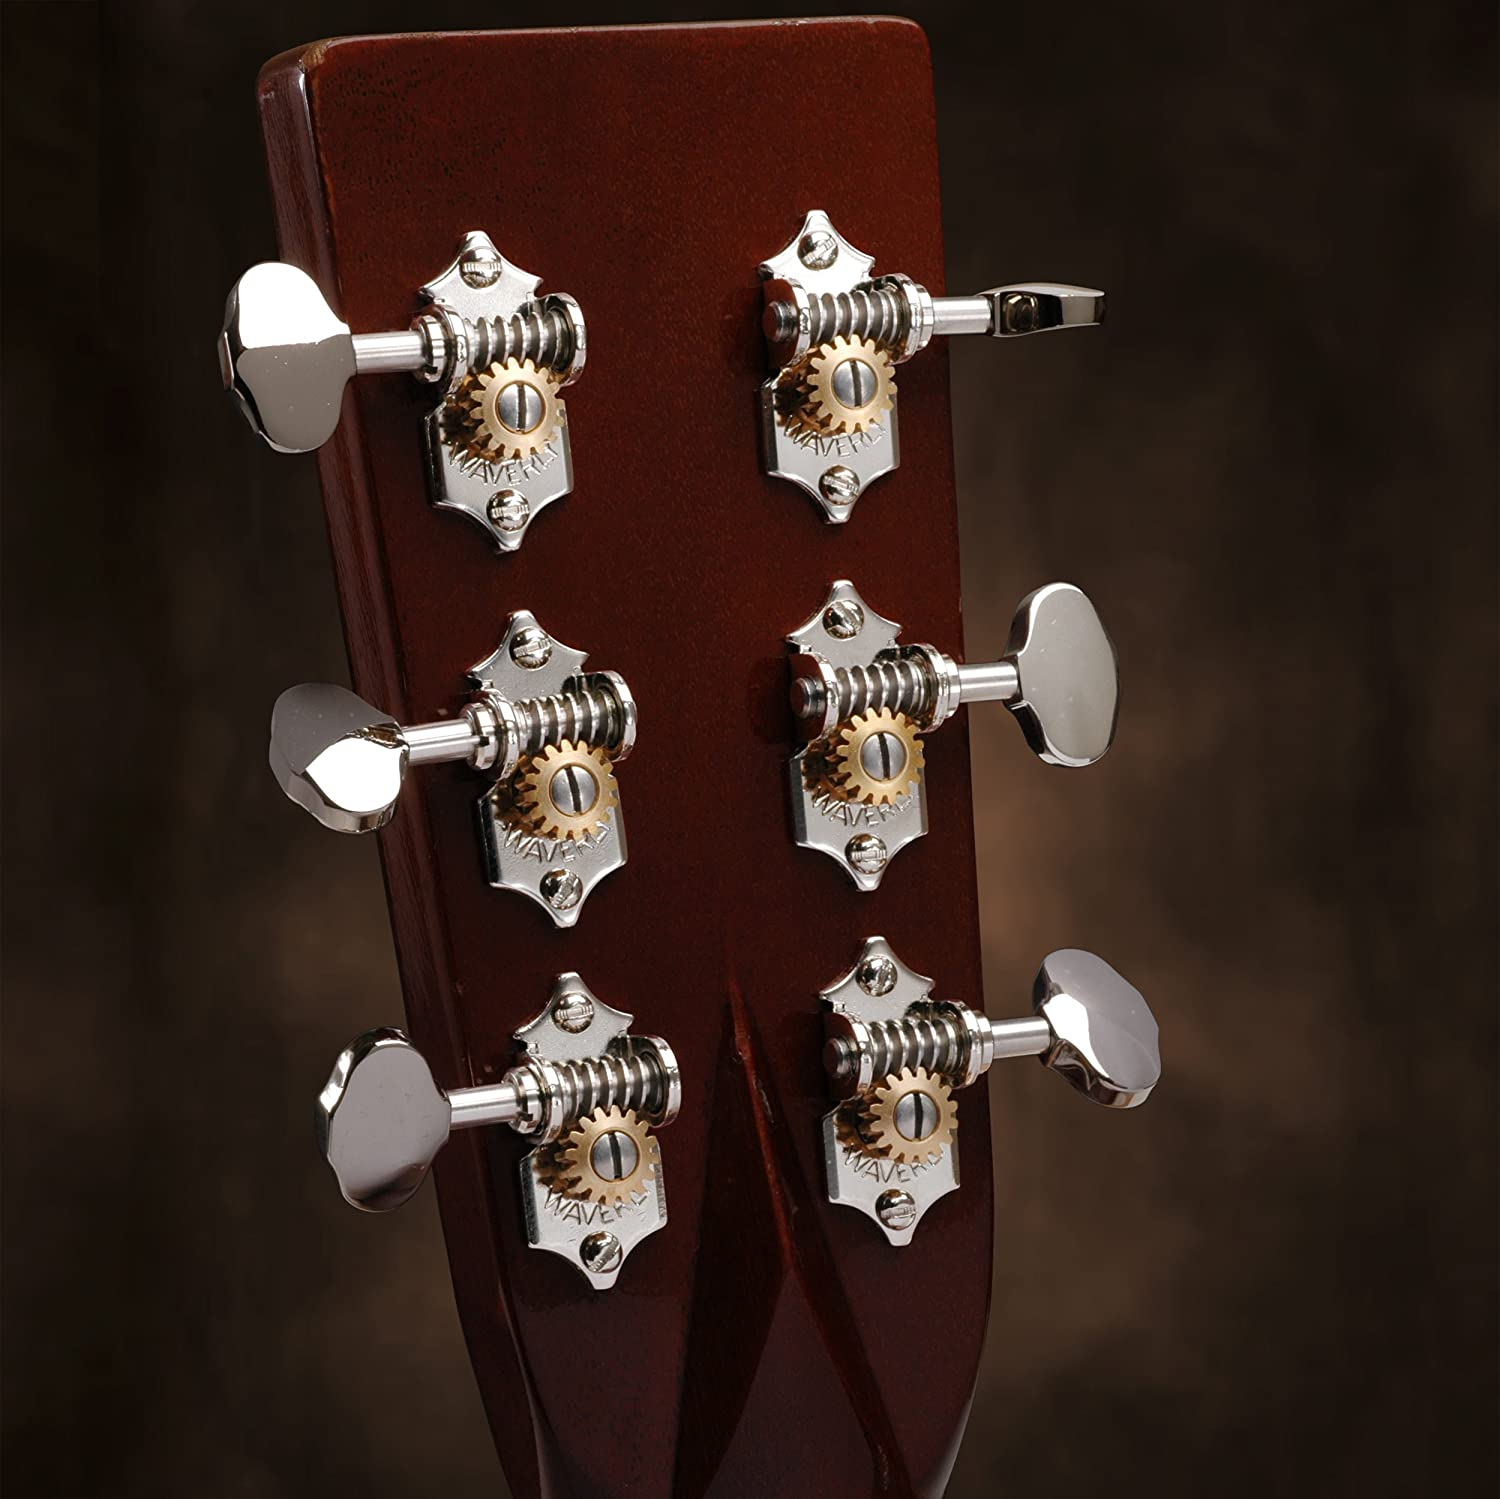 waverly guitar tuners with butterbean knobs for solid